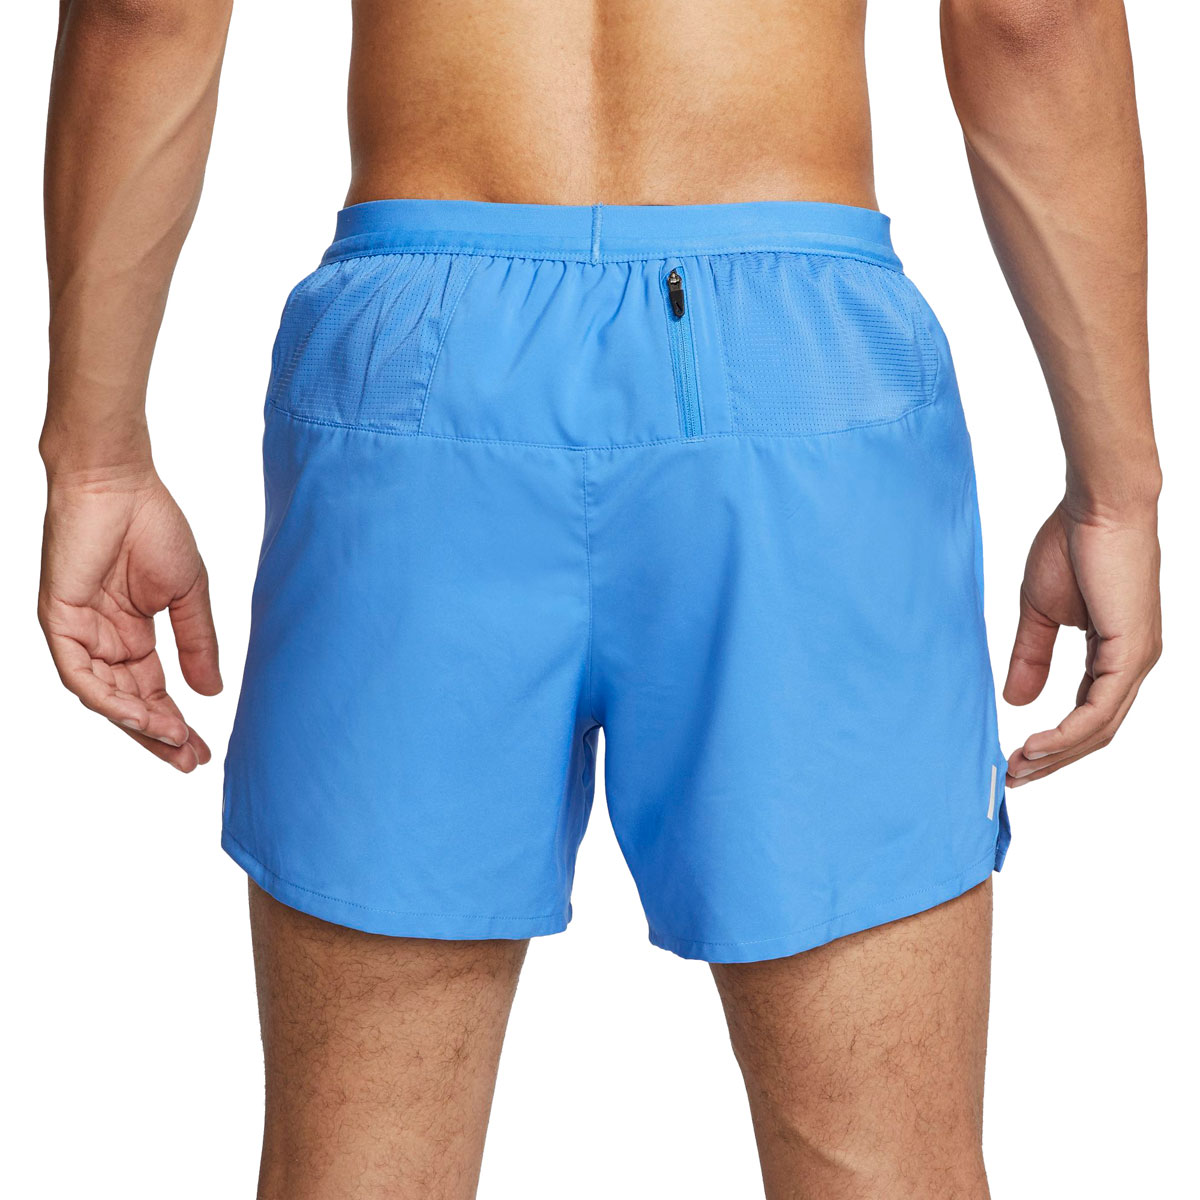 """Men's Nike Flex Stride 5"""" Brief Running Shorts - Color: Pacific Blue/Reflective Silver - Size: S, Pacific Blue/Reflective Silver, large, image 2"""